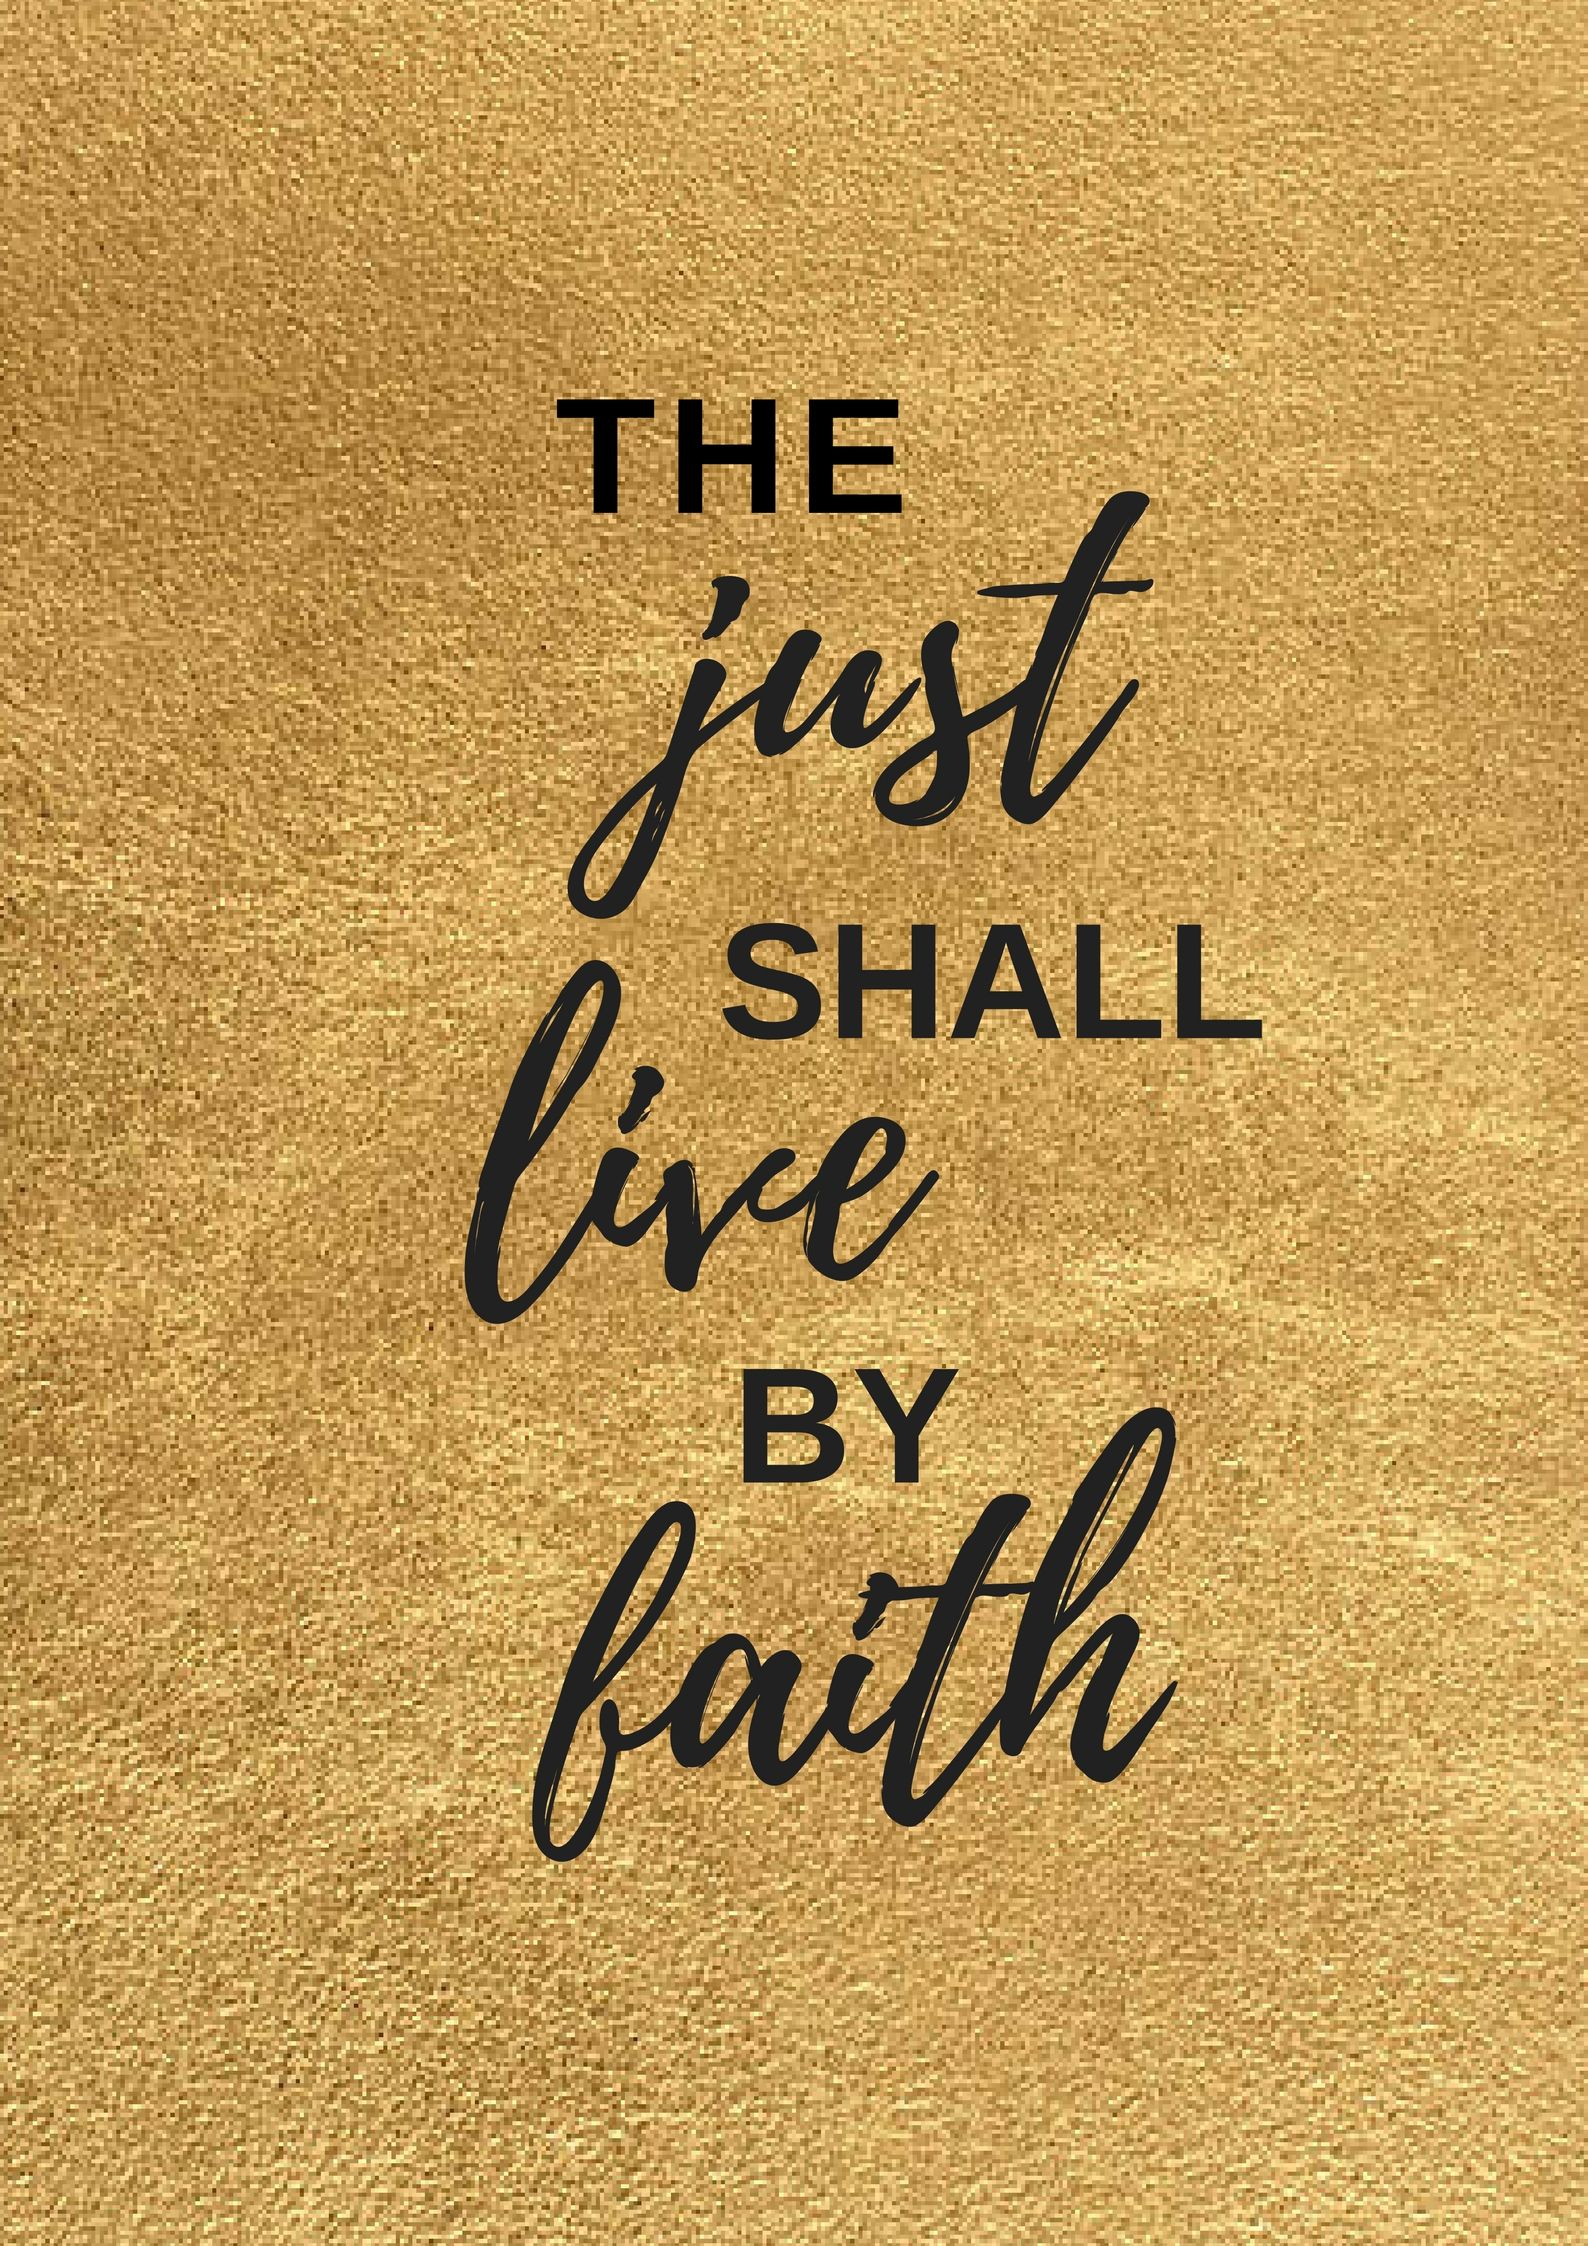 The just shall live by faith. #quotes #livebyfaith #faith #quotes #inspirational #bible #truth | Faith, Inspirational  quotes, Love facts